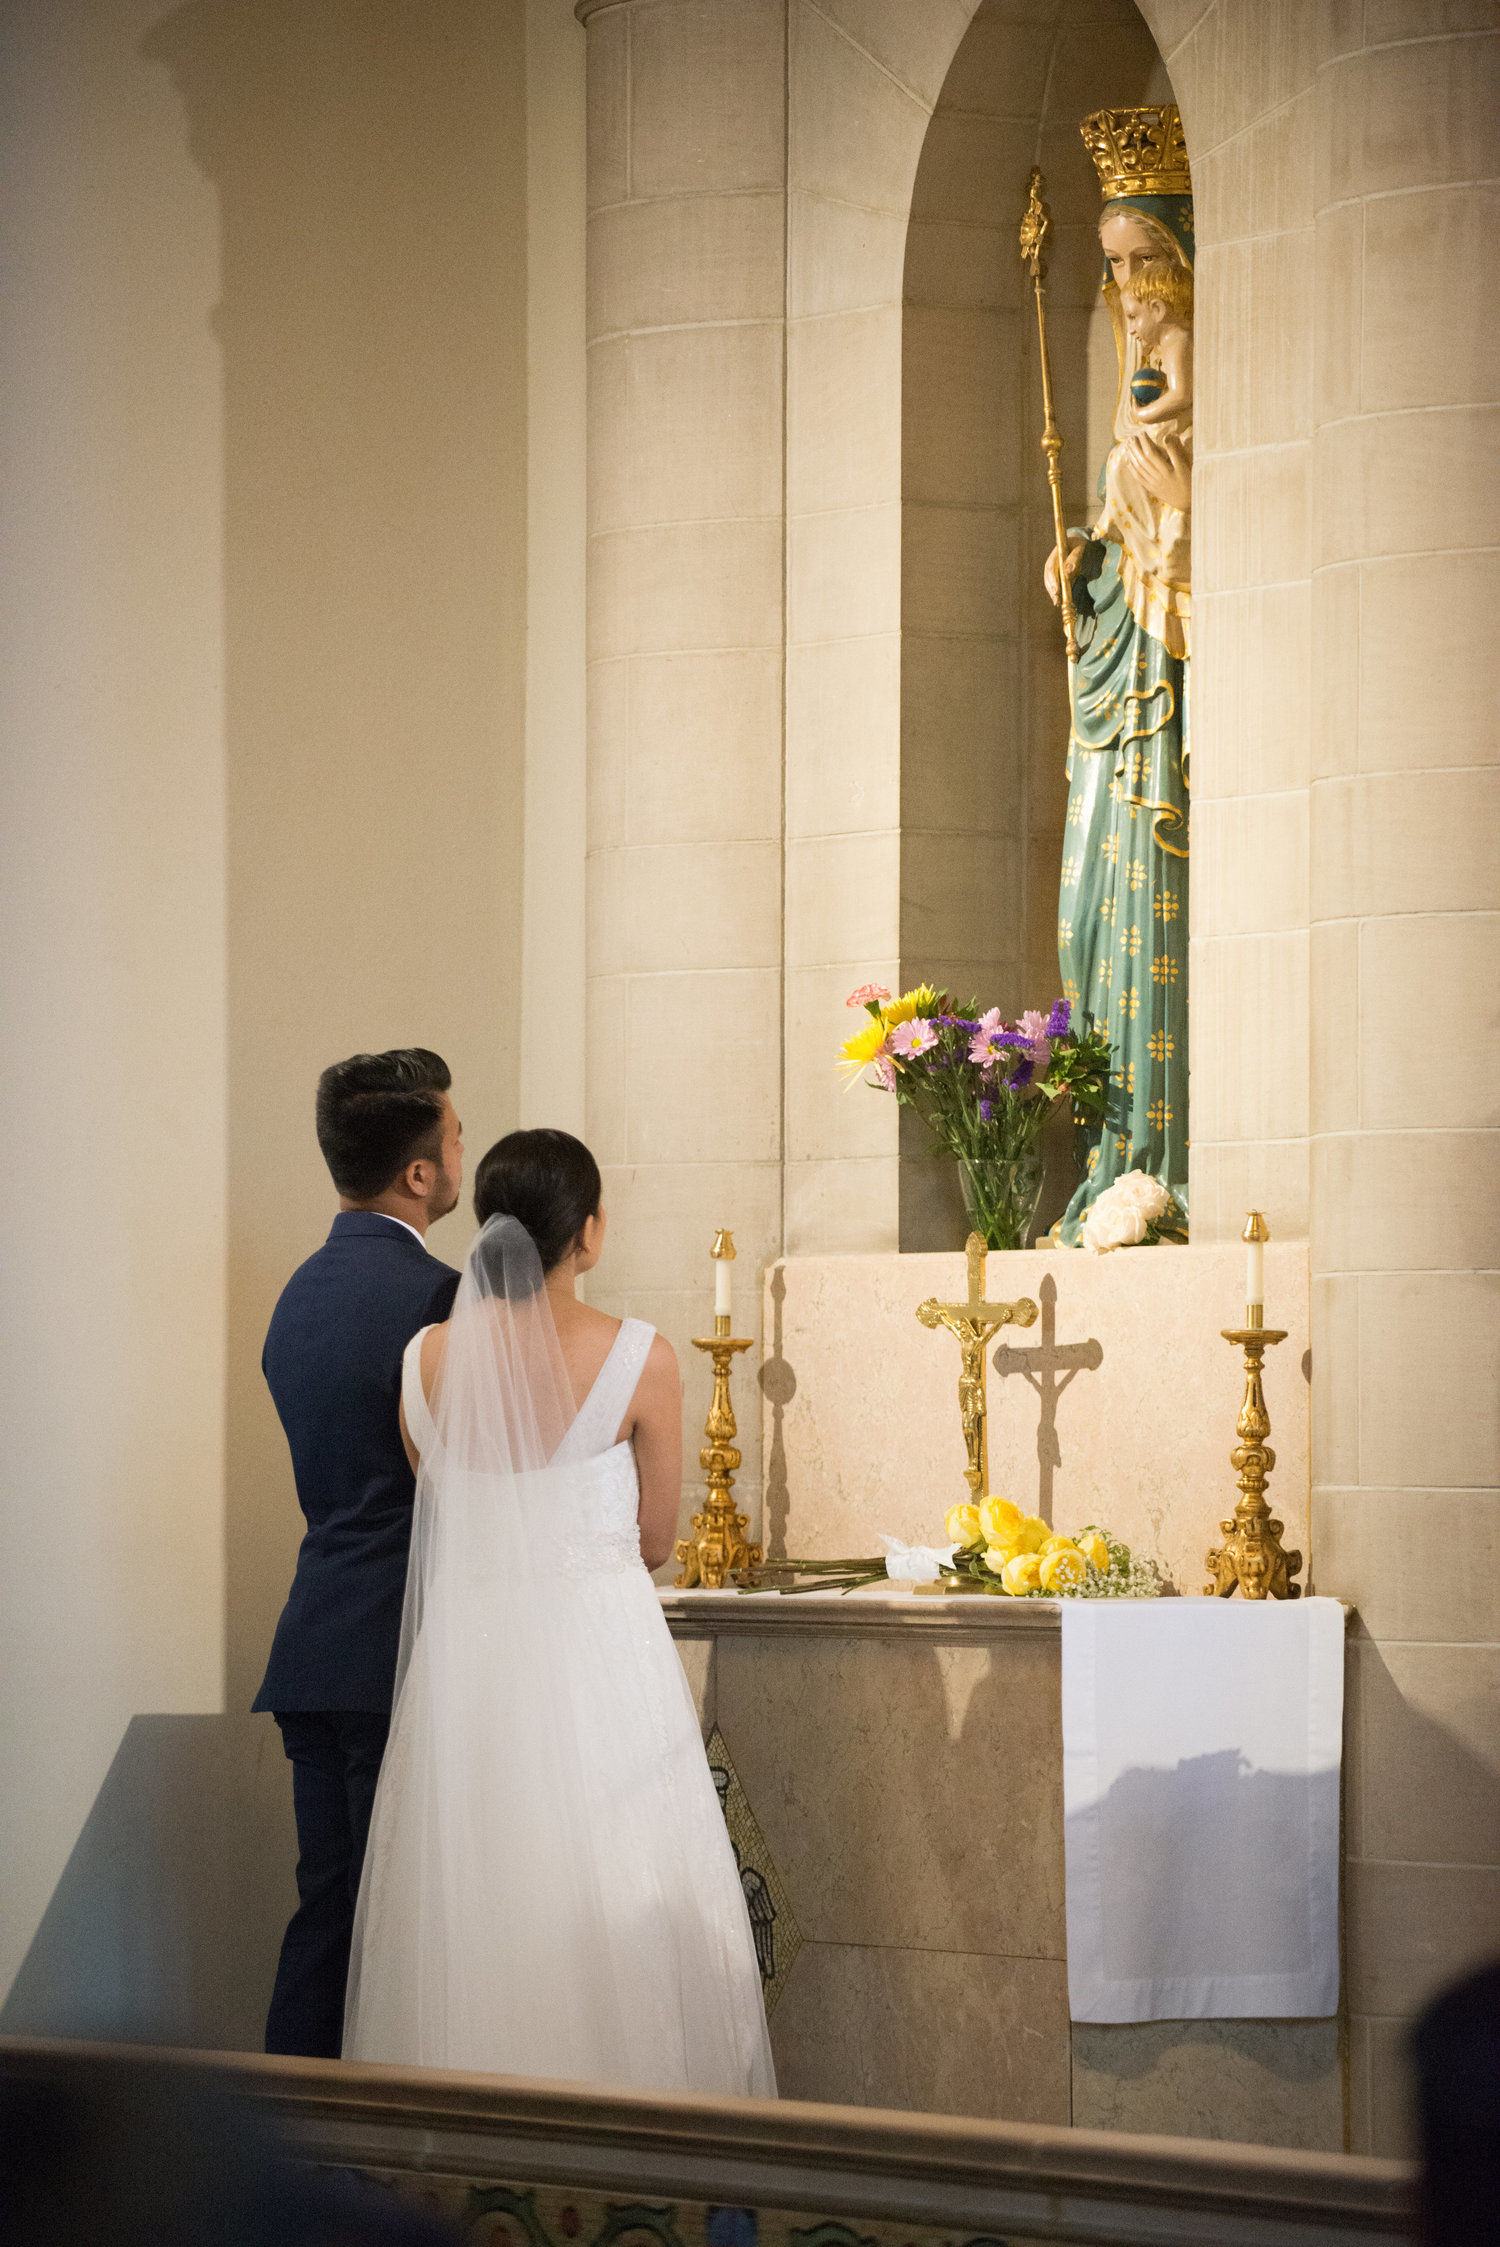 Catholic Wedding Traditions.Wedding Traditions Blog Spoken Bride